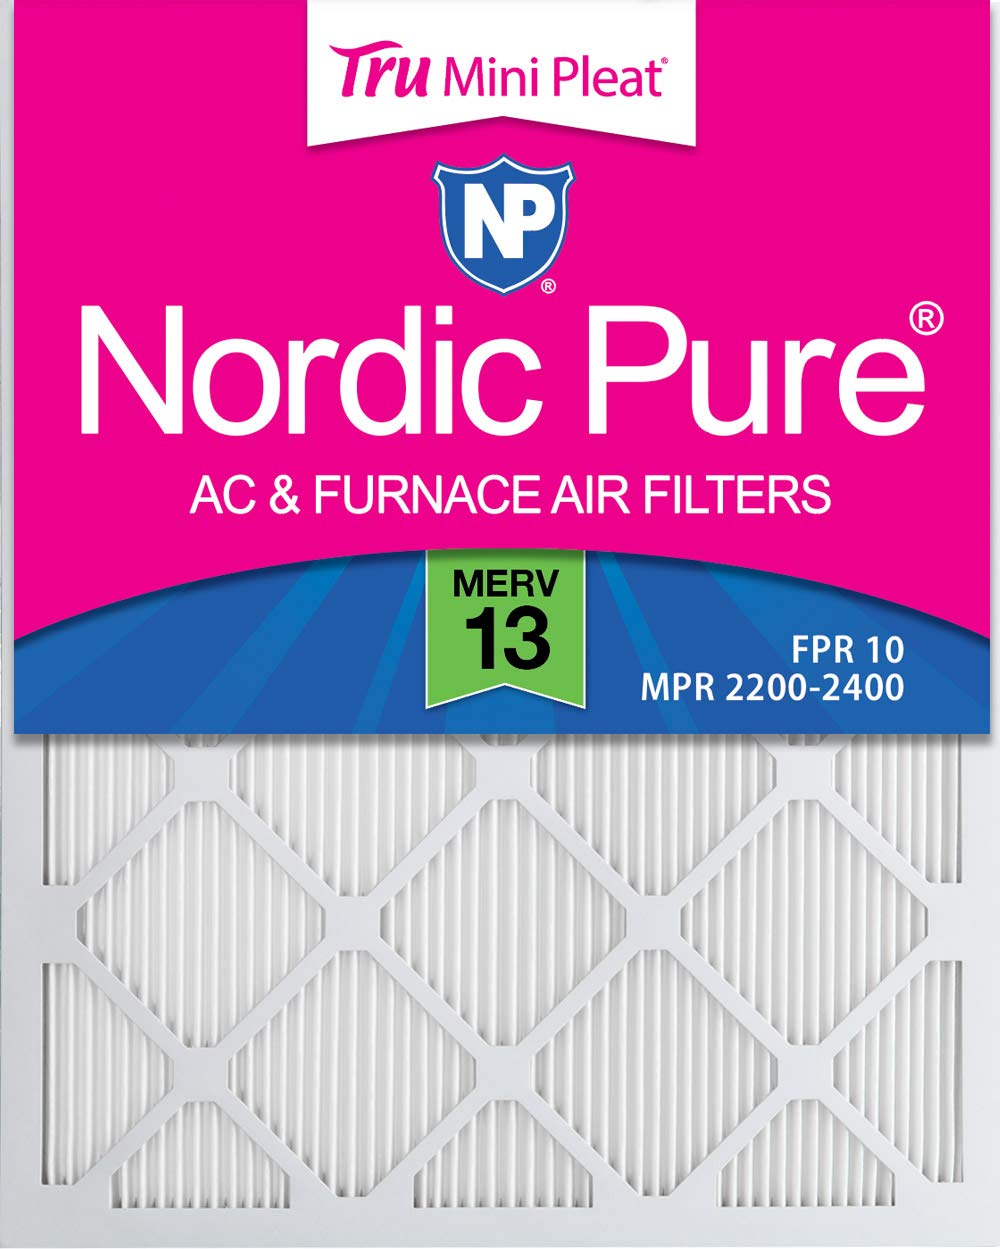 Nordic Pure 18x36x1 MERV 13 Tru Mini Pleat AC Furnace Air Filters 4 Pack